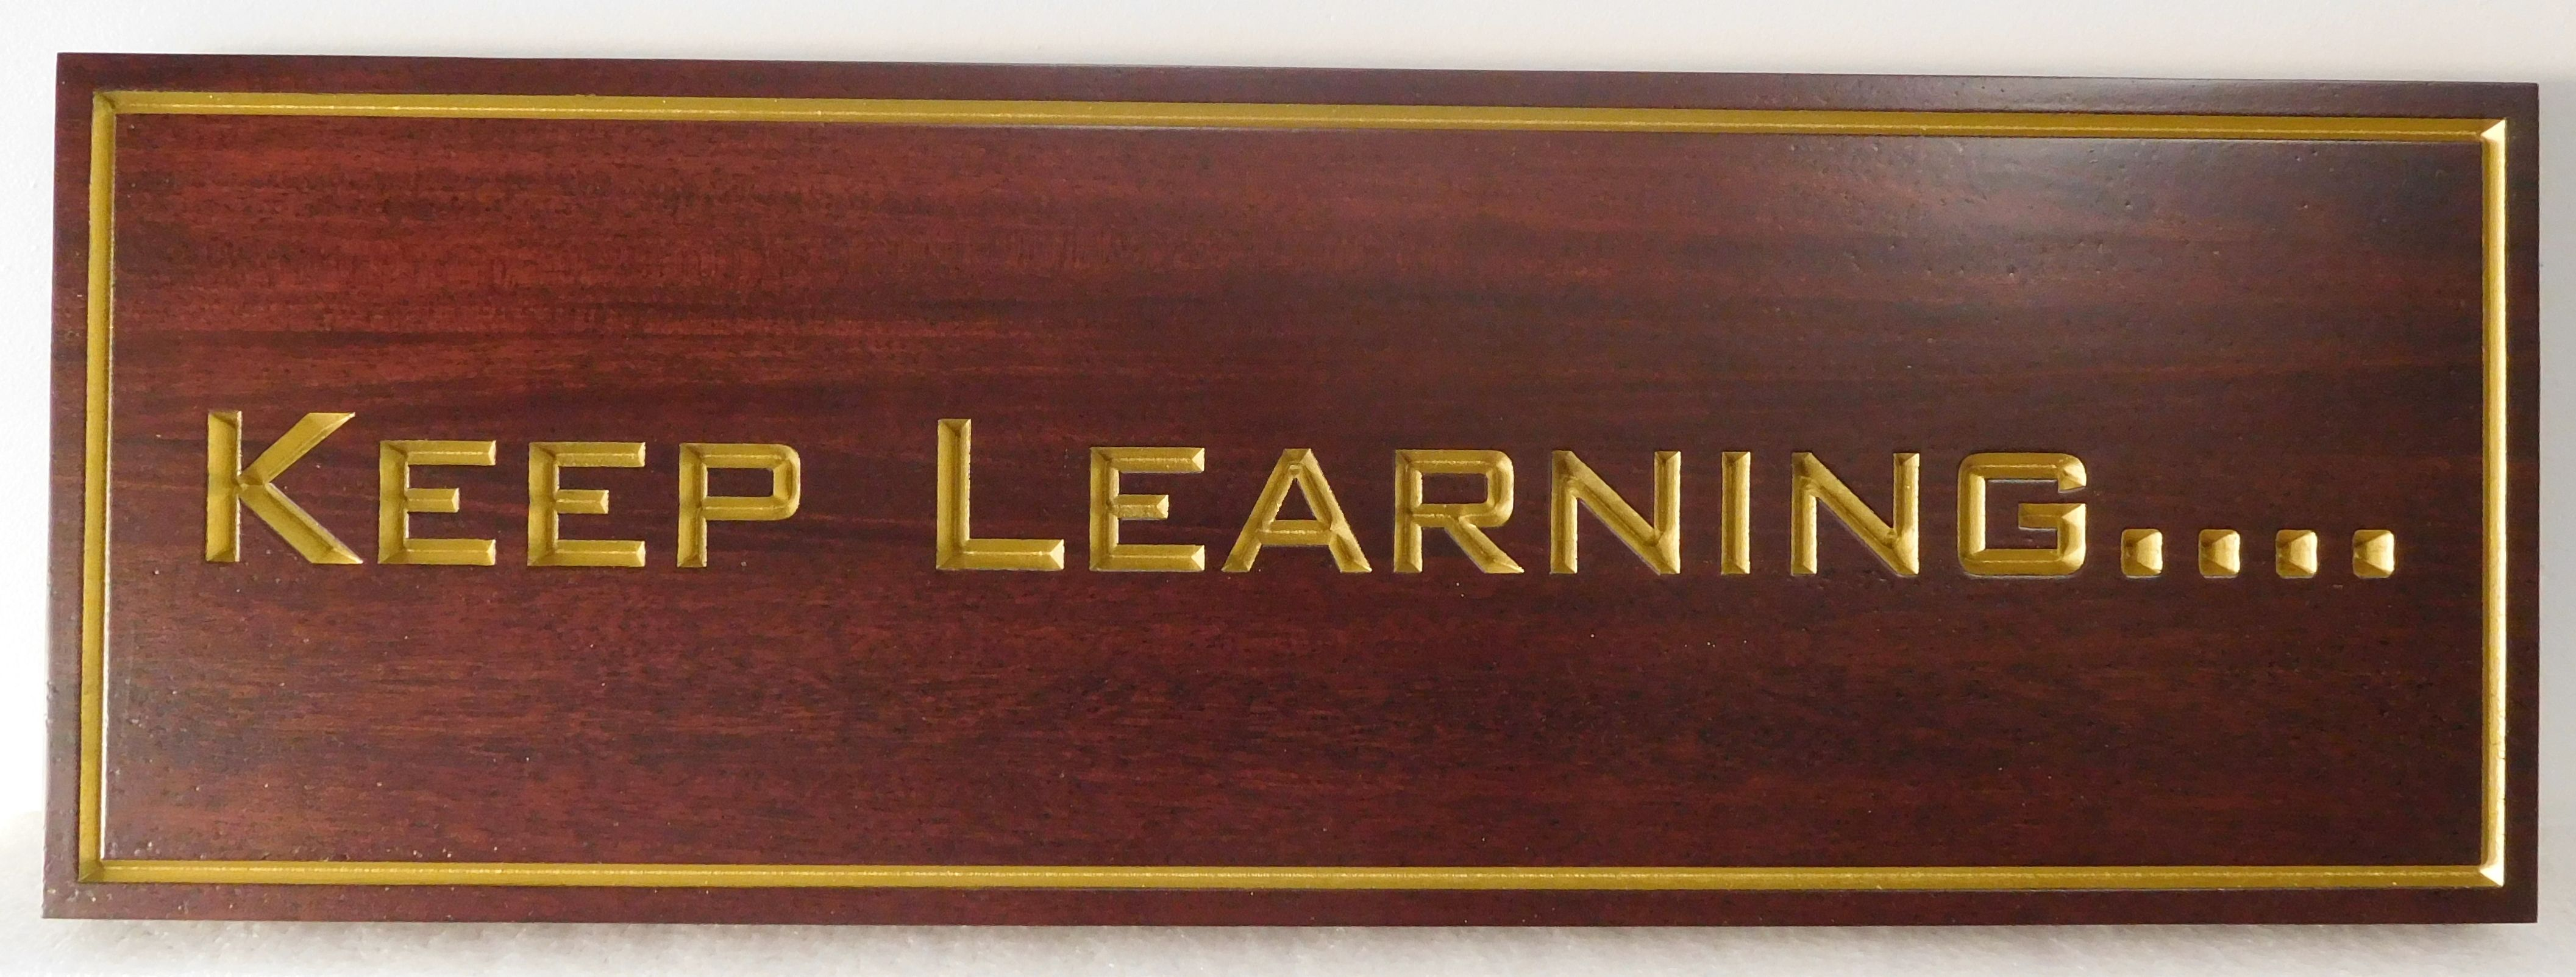 "Y34845 - Engraved (V-carved) African Mahogany Wall Plaque with saying ""Keep Learning.."" ,Gilded with 24K Gold Leaf"